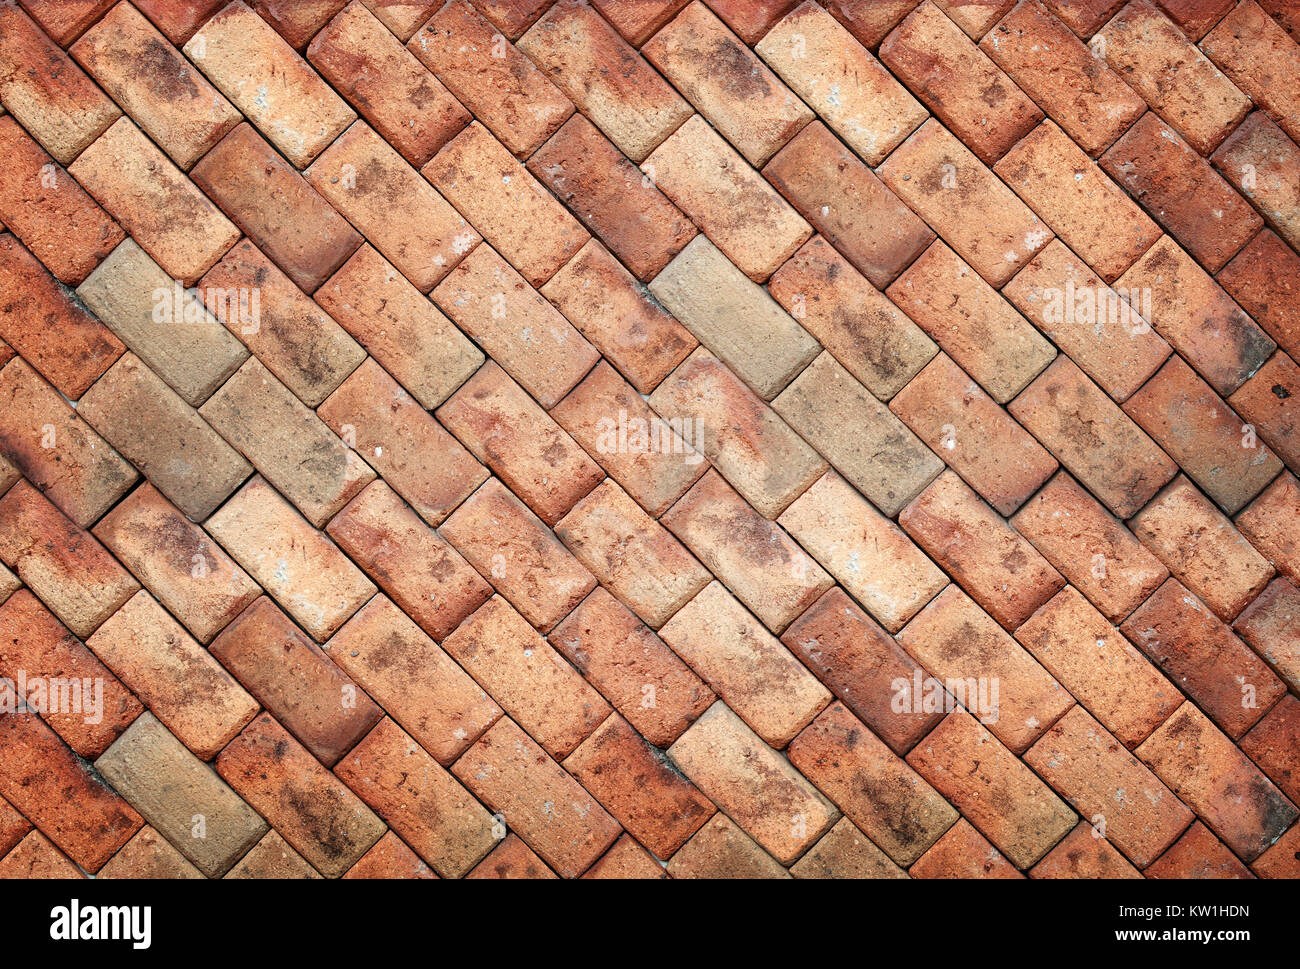 brown brick wall texture - Stock Image